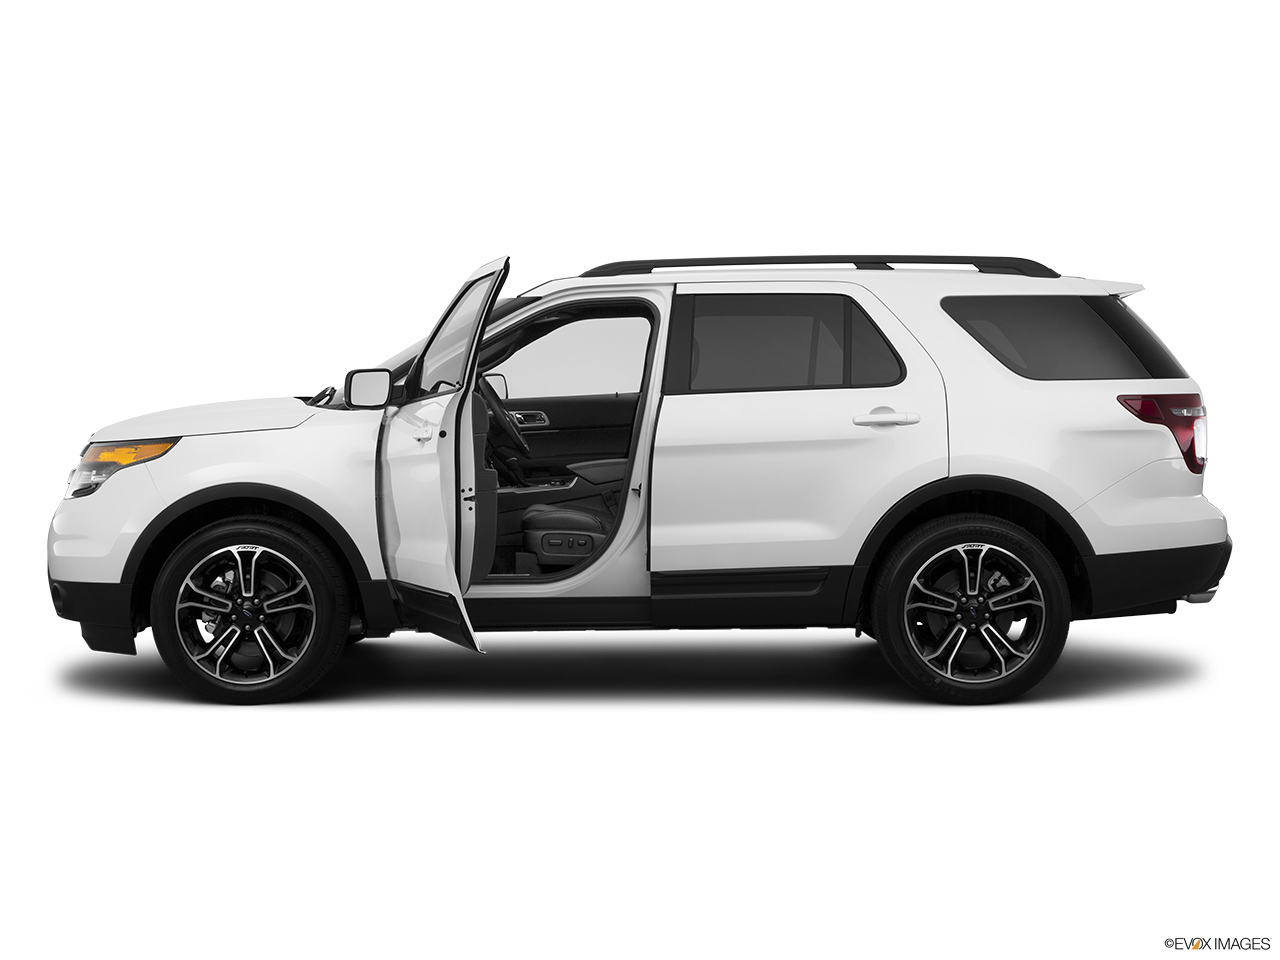 Suv >> 2015 Ford Explorer 4WD 4 Door Sport - Driver's side profile with drivers side door open